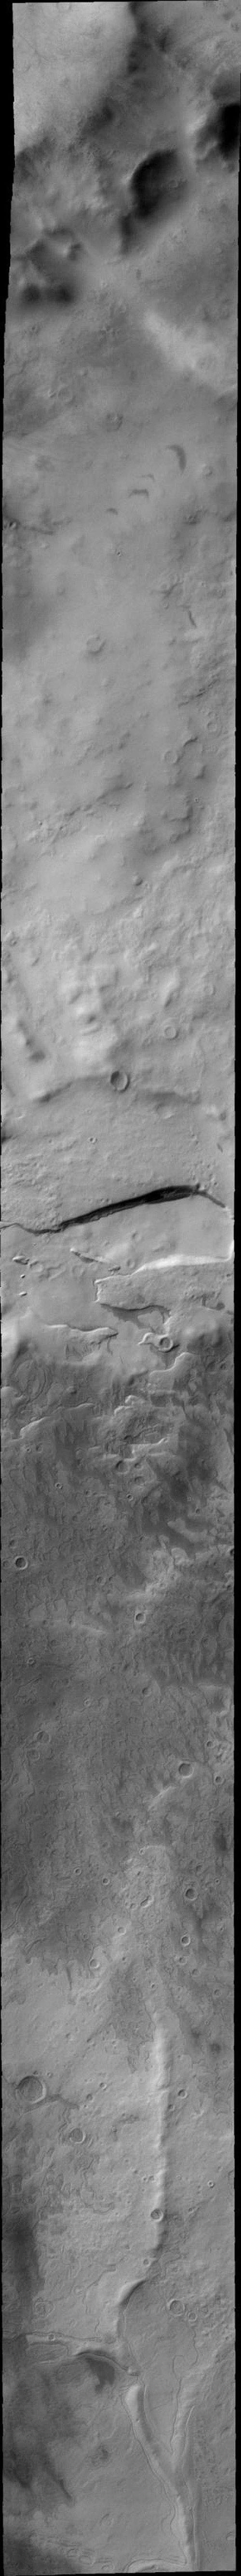 This 2001 Mars Odyssey image shows Promethei Planum, located near Mars' south polar cap, containing many different surface textures.